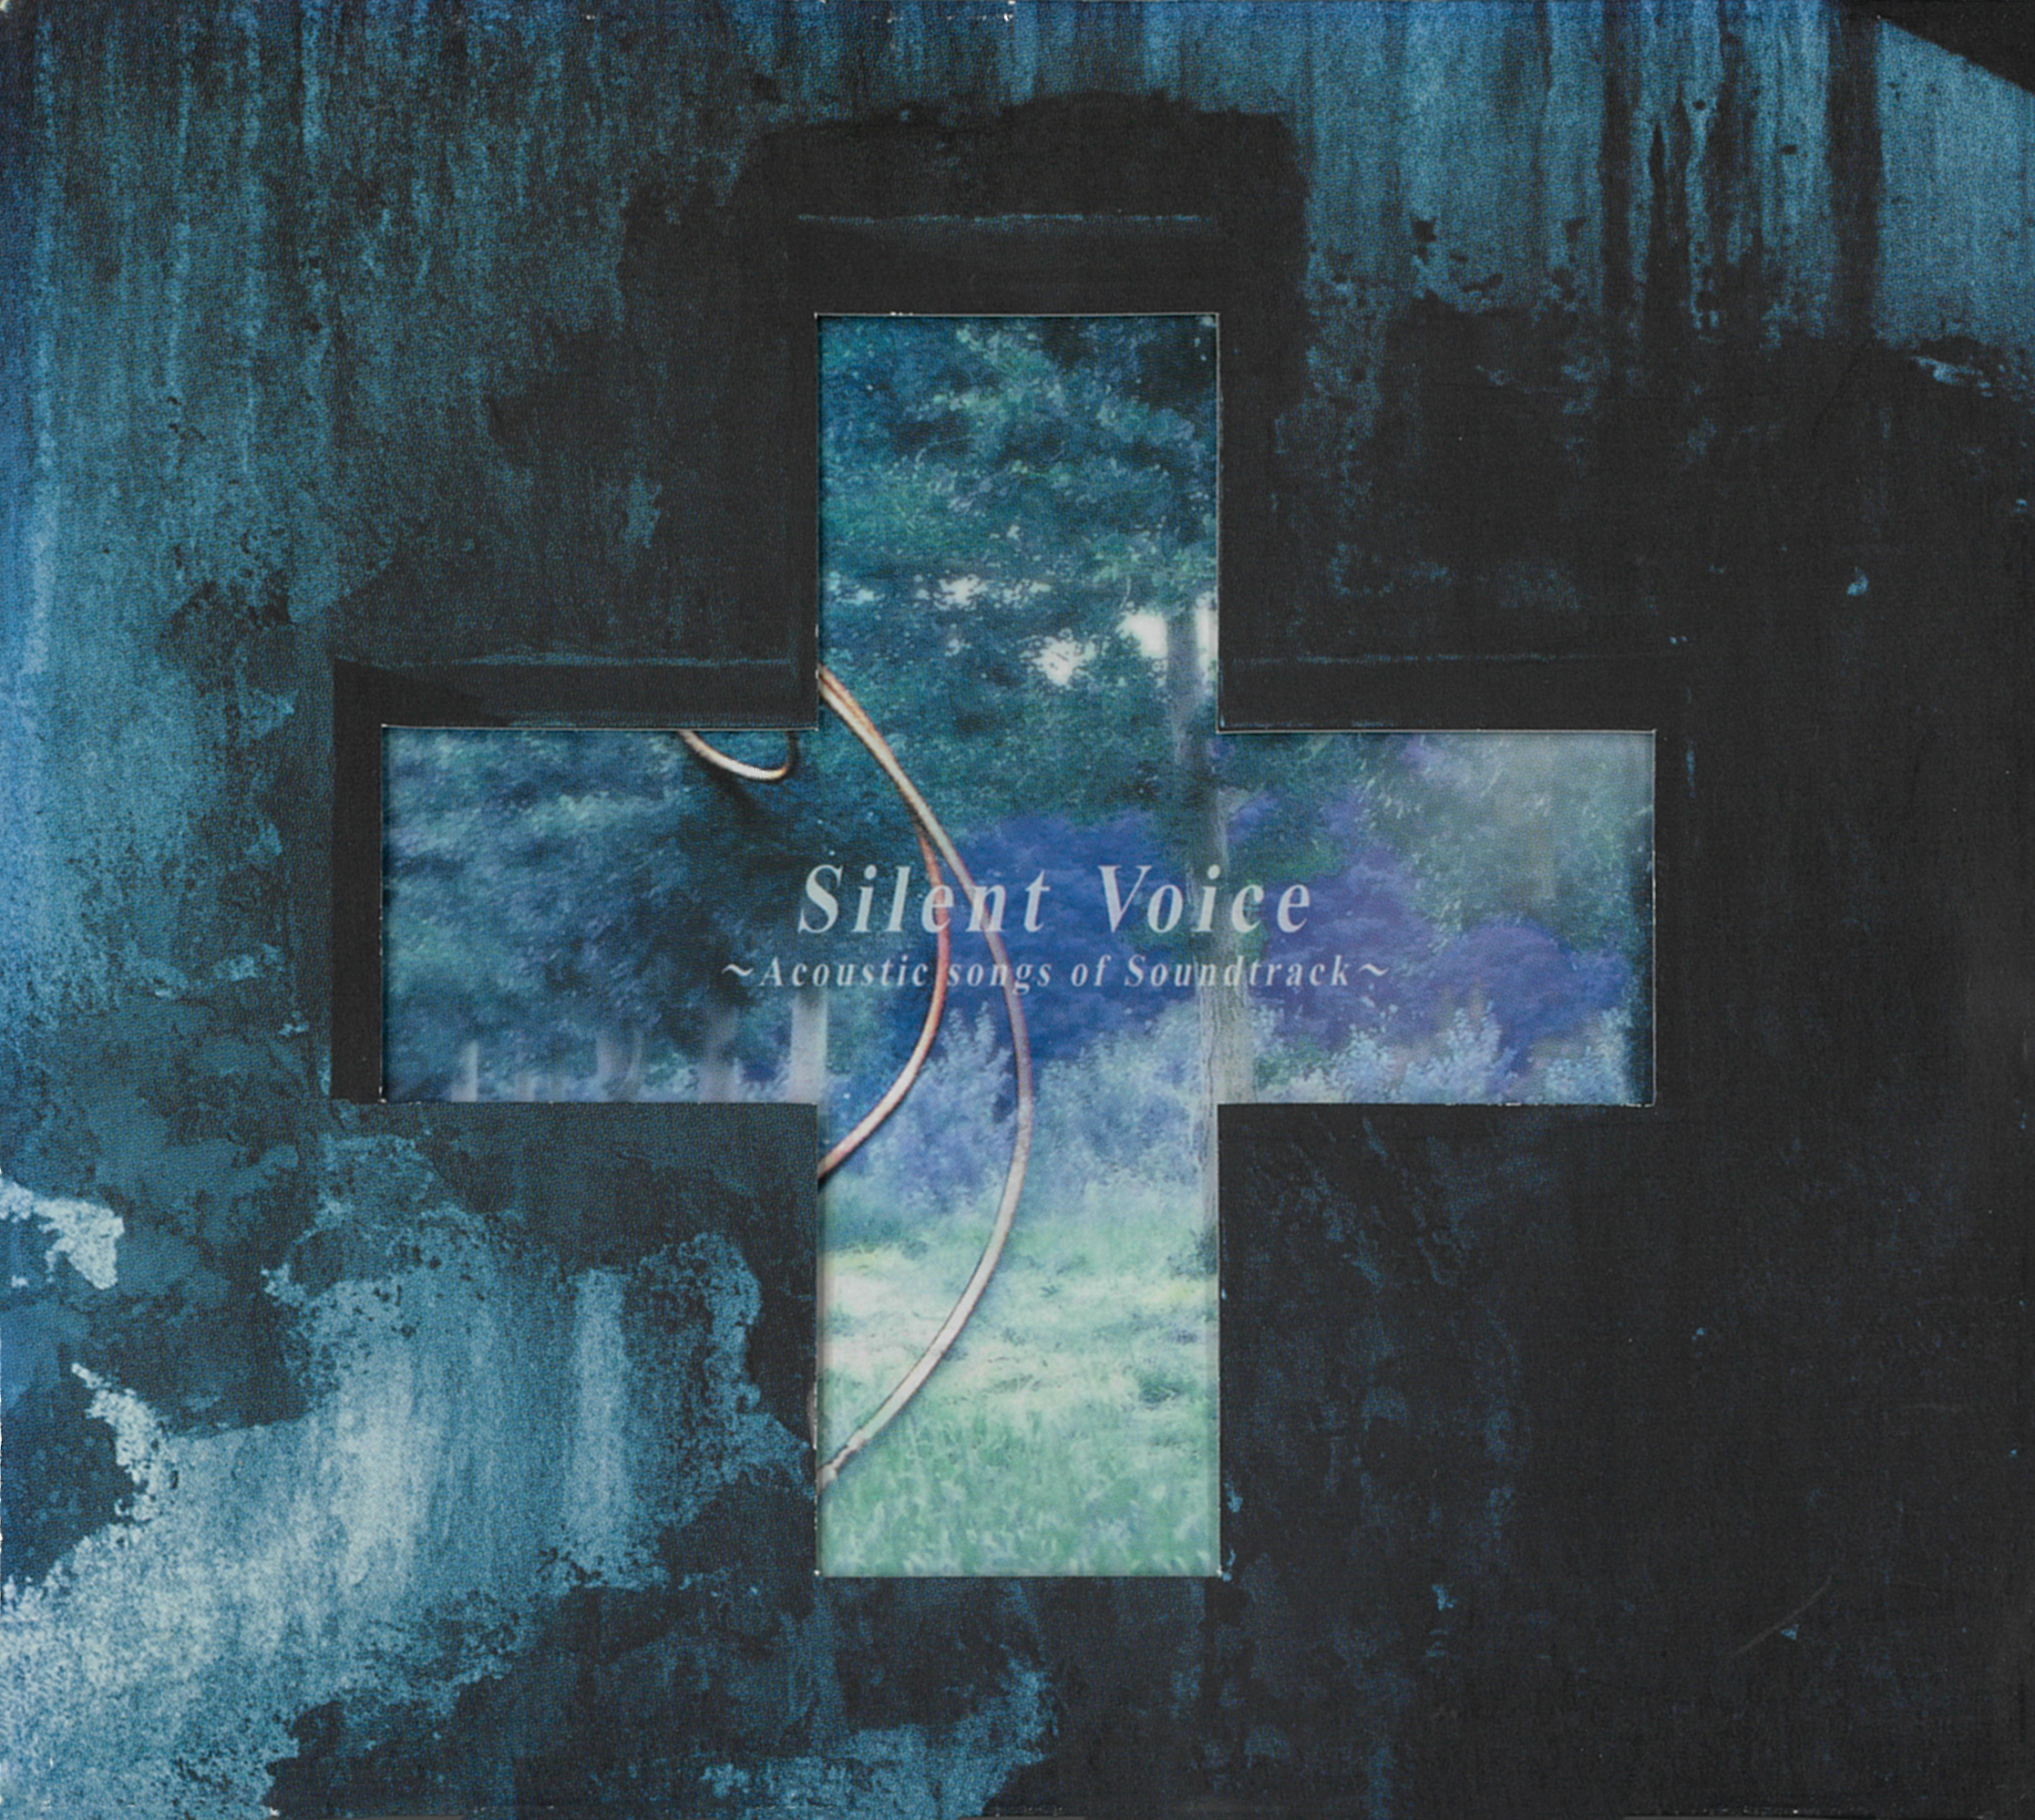 Silent Voice~Acoustic Songs of Soundtrack~